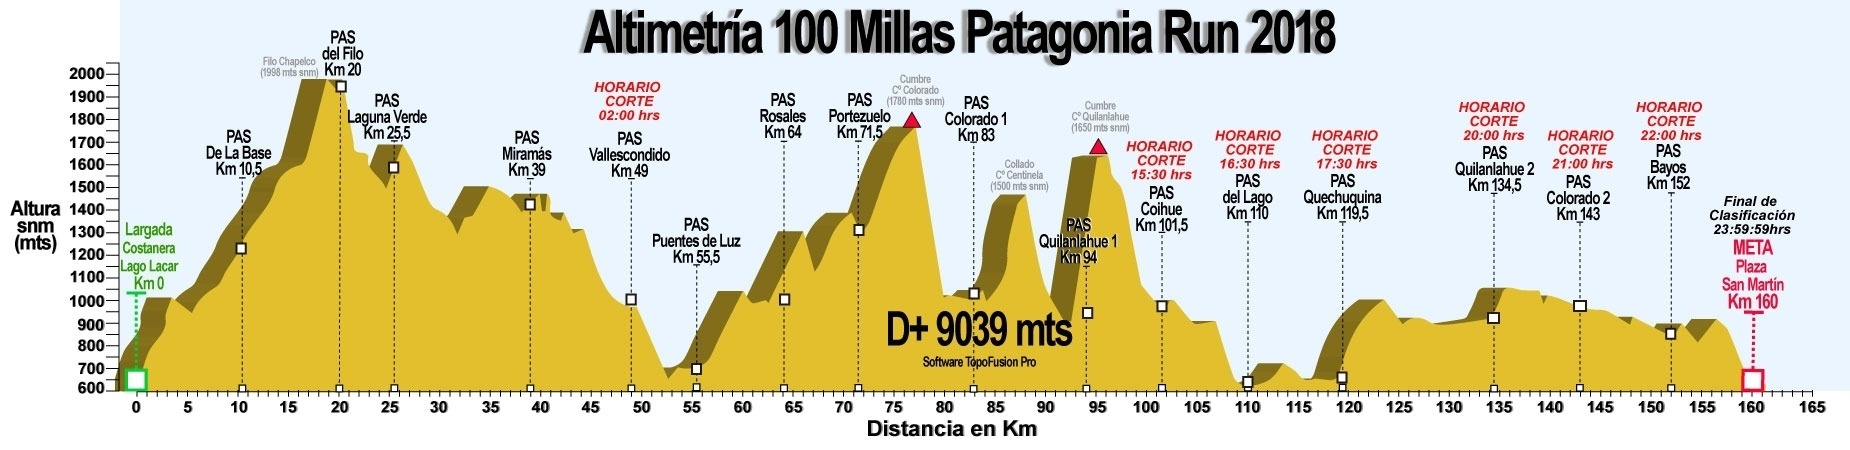 patagonia_run_altimetria